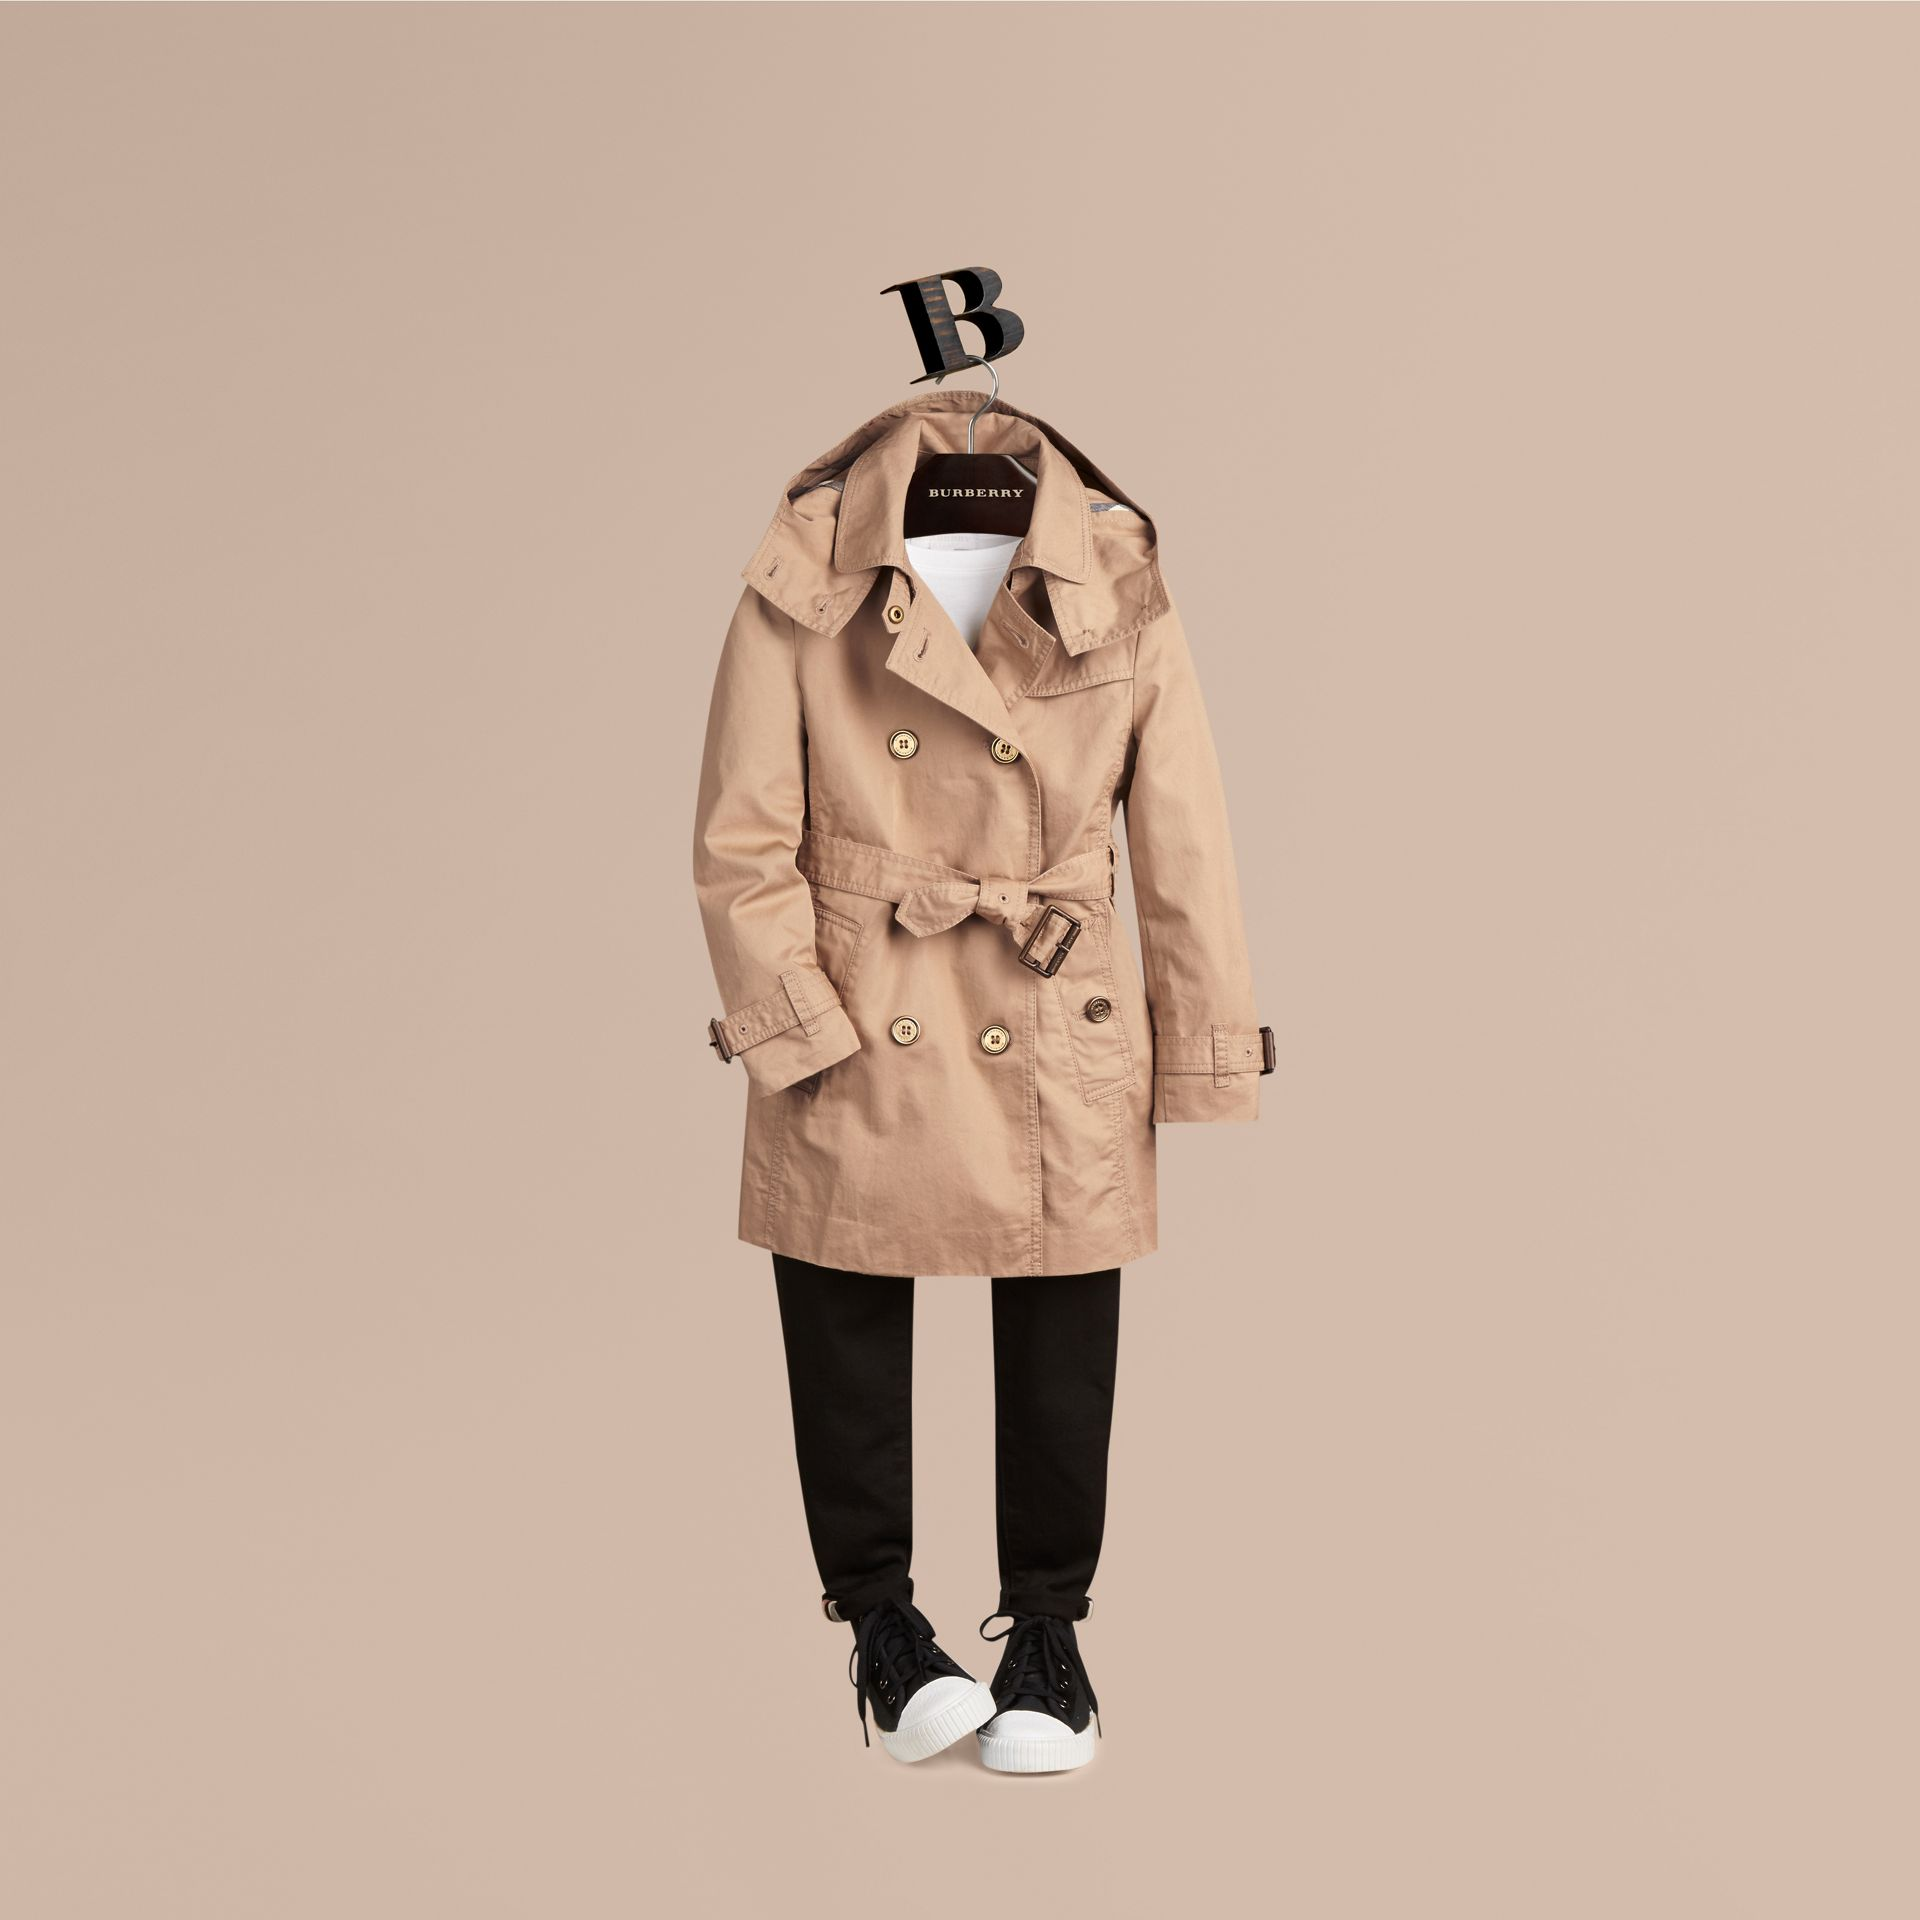 Miel Trench-coat à capuche amovible en sergé de coton - photo de la galerie 1